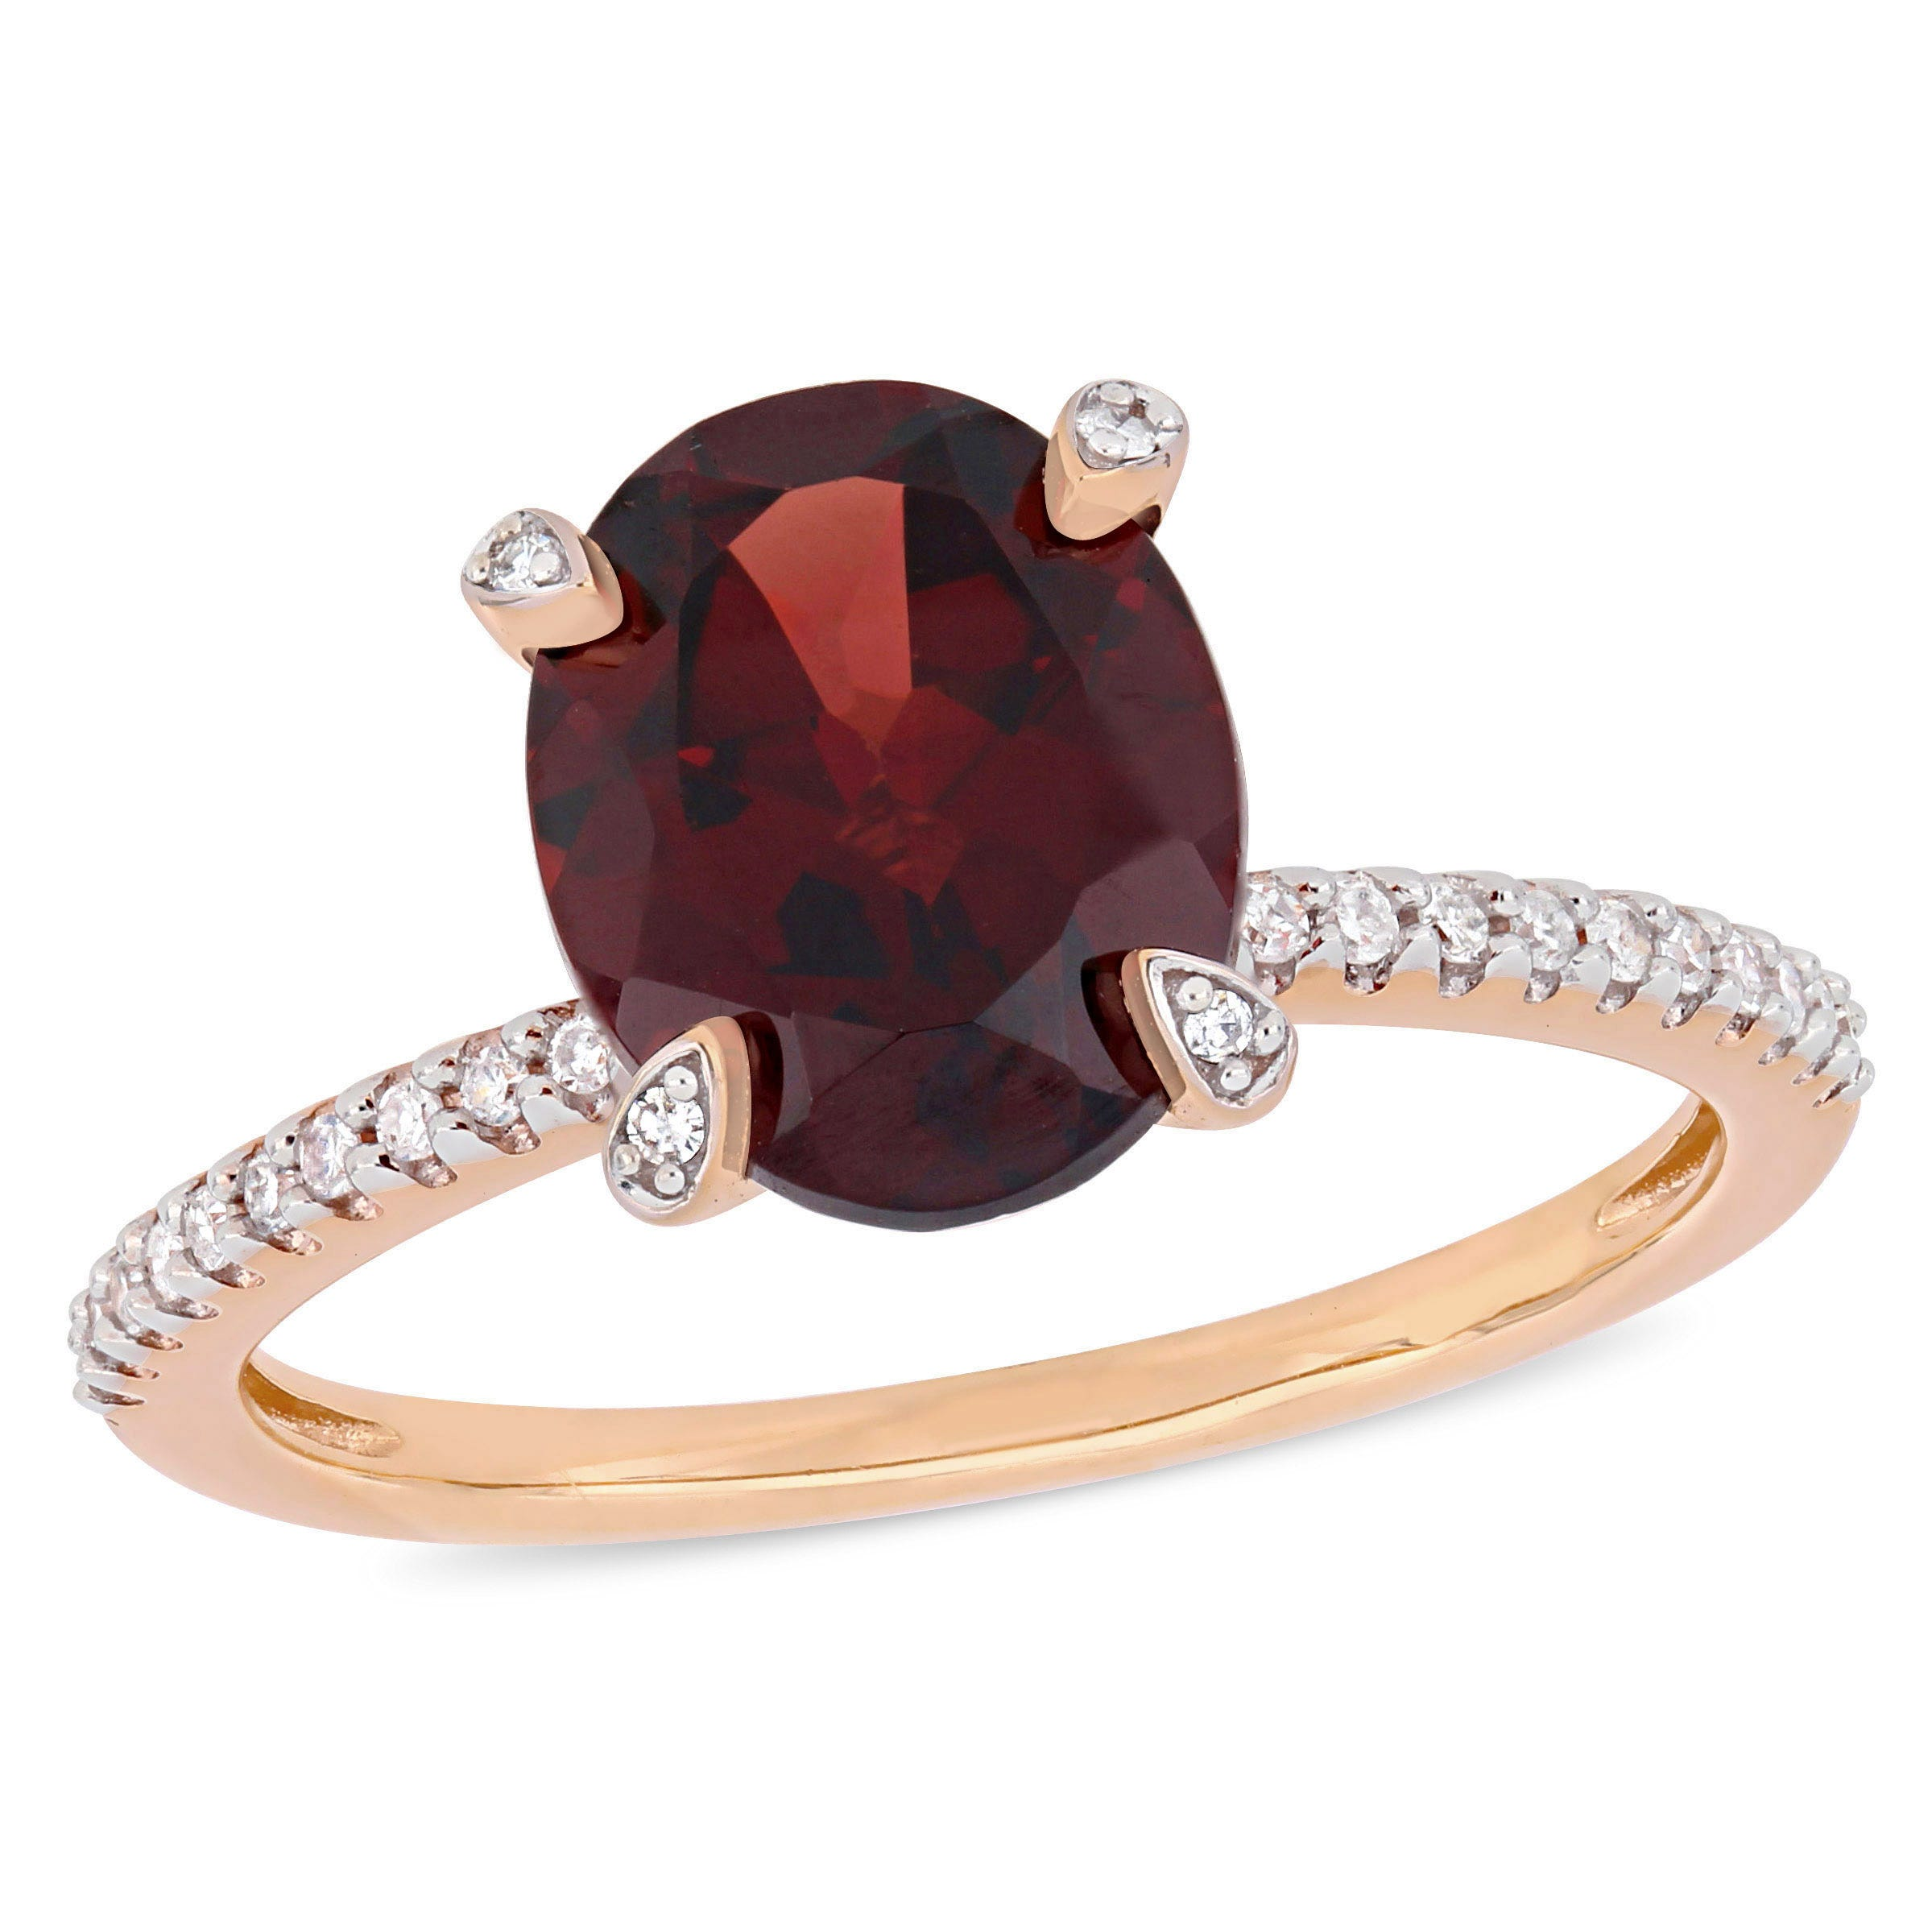 Oval Garnet & Diamond Engagement Ring in 10k Rose Gold